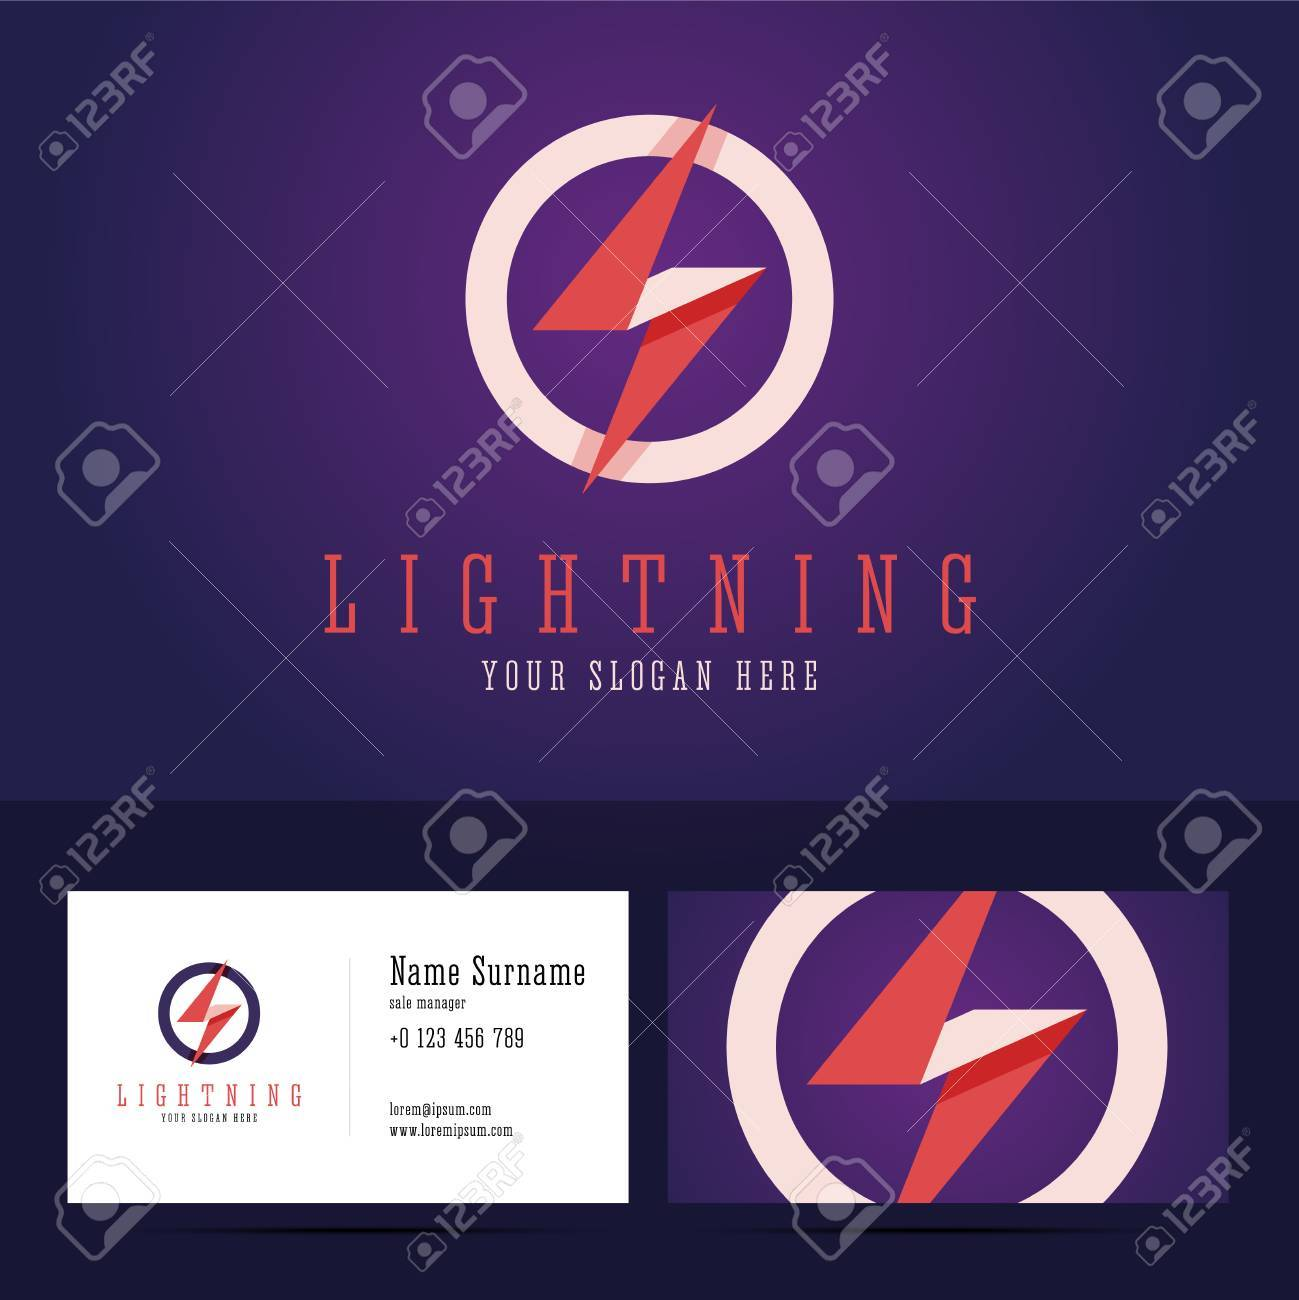 Lightning Logo And Business Card Template. Flat Style With ...